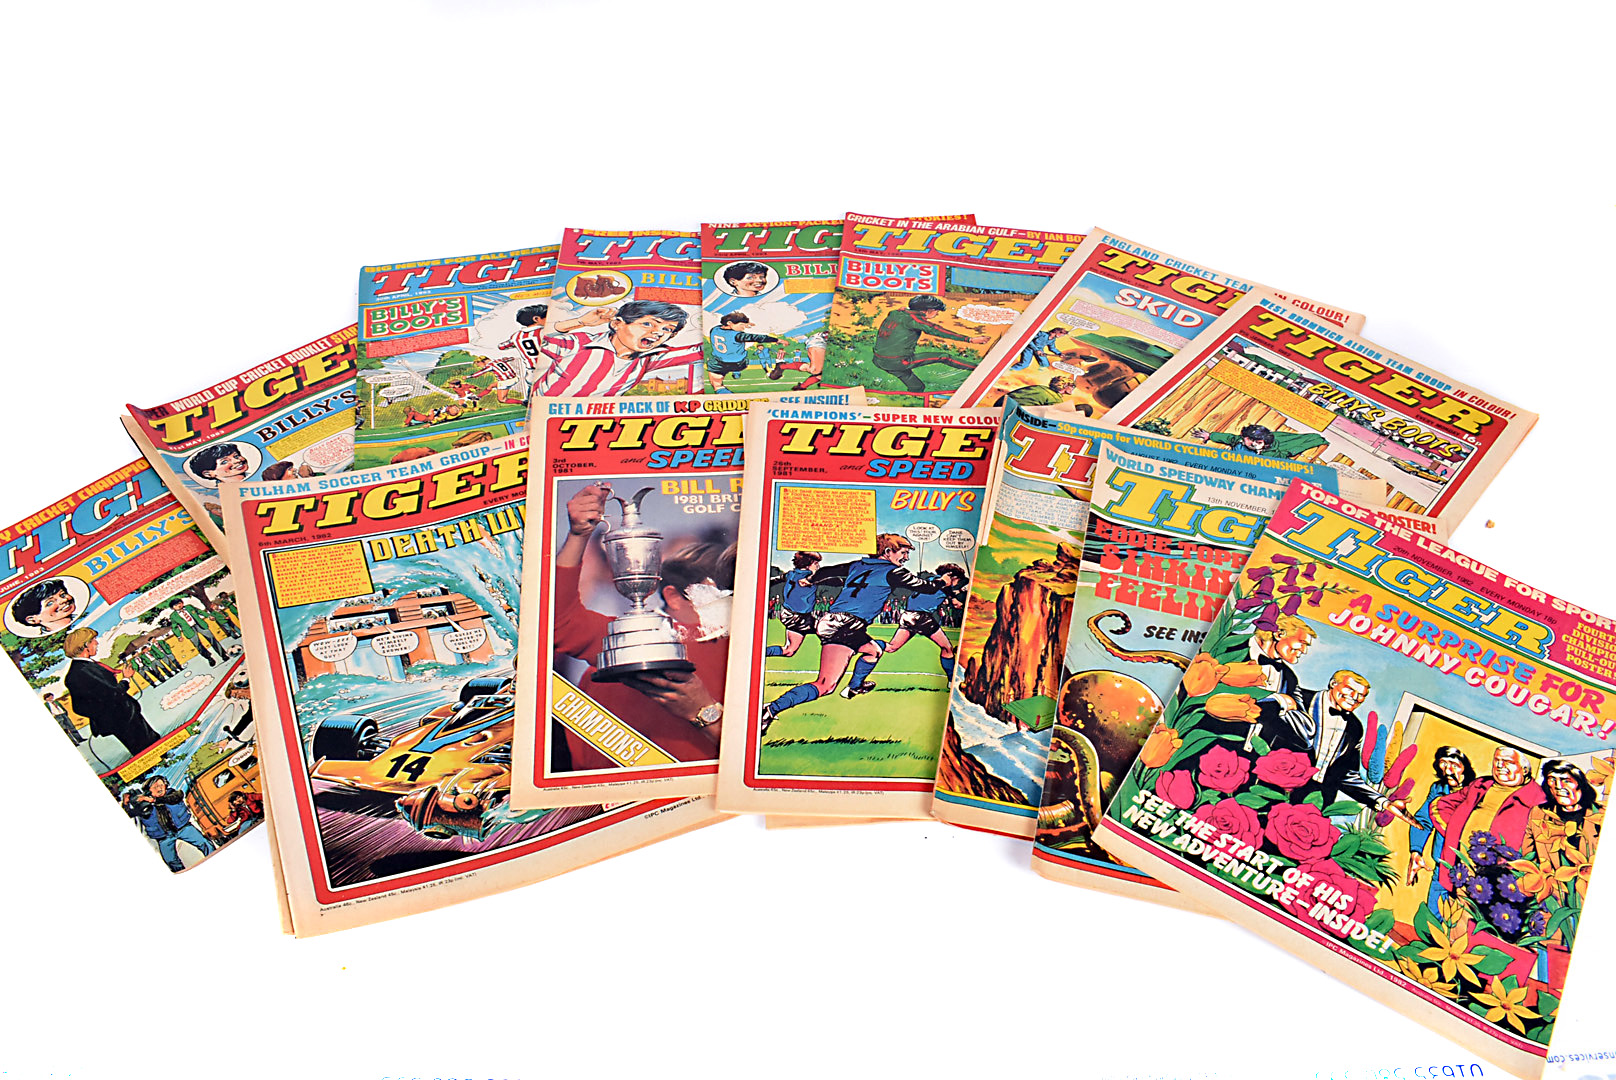 A large collection of late 1970s/ early 1980s Tiger comics, mainly 1981-1984, approximately 150+